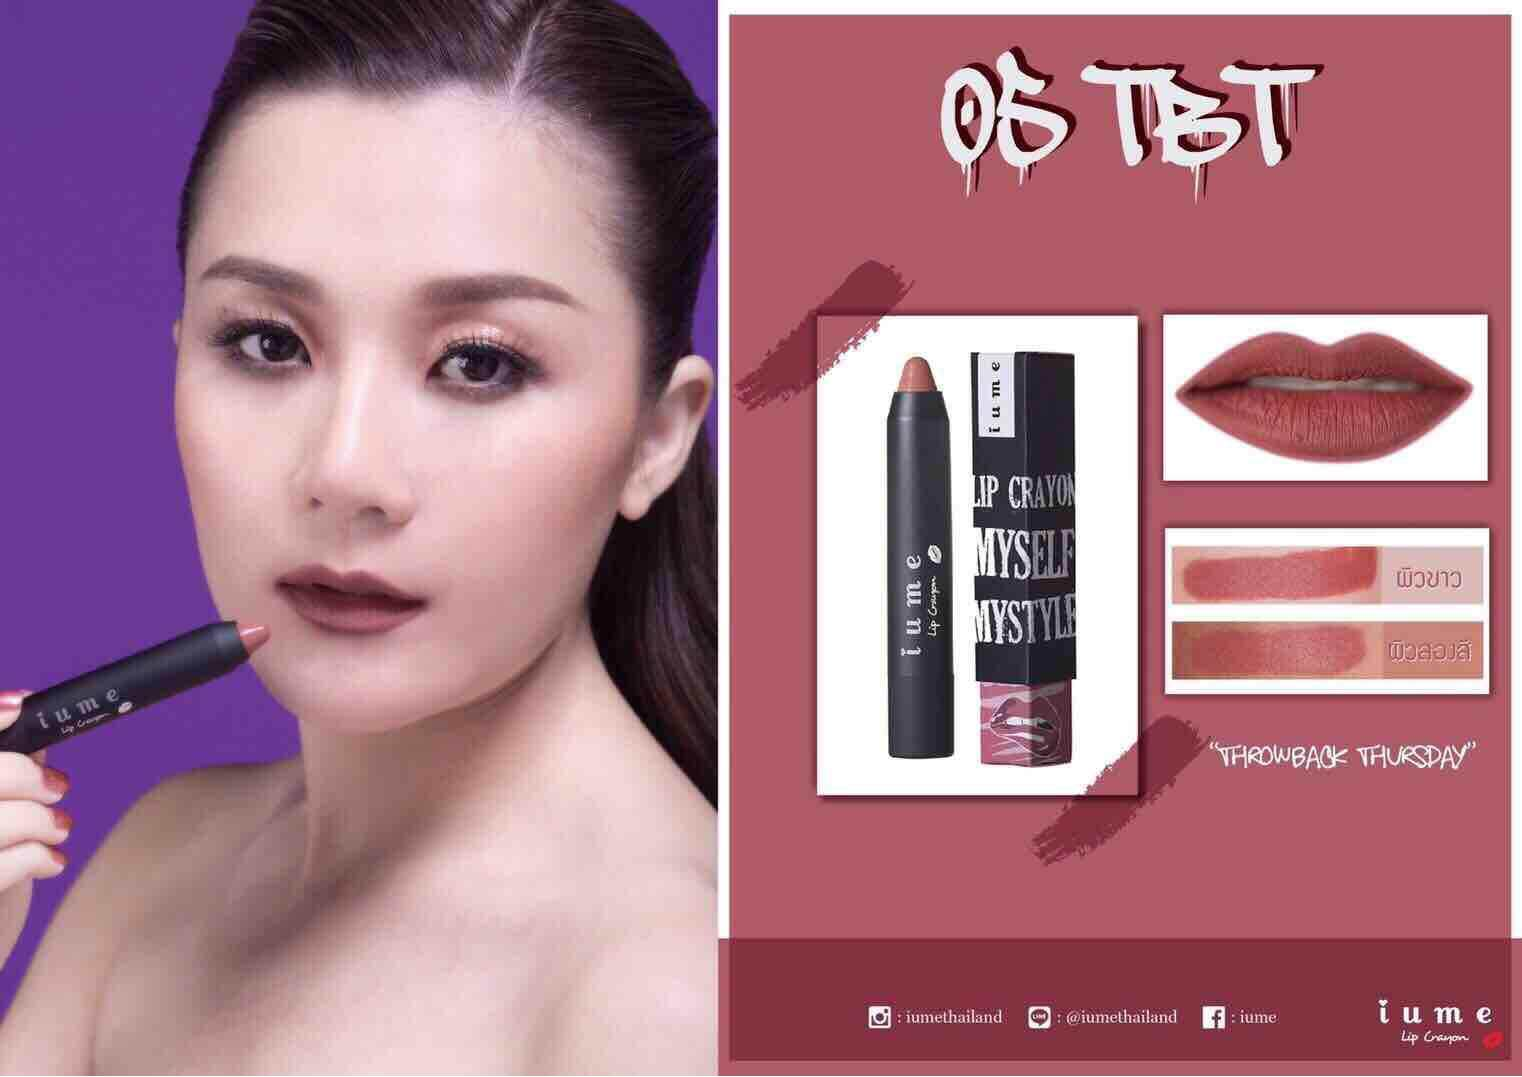 Iume Lip Crayon 05 Tbt By Iume.